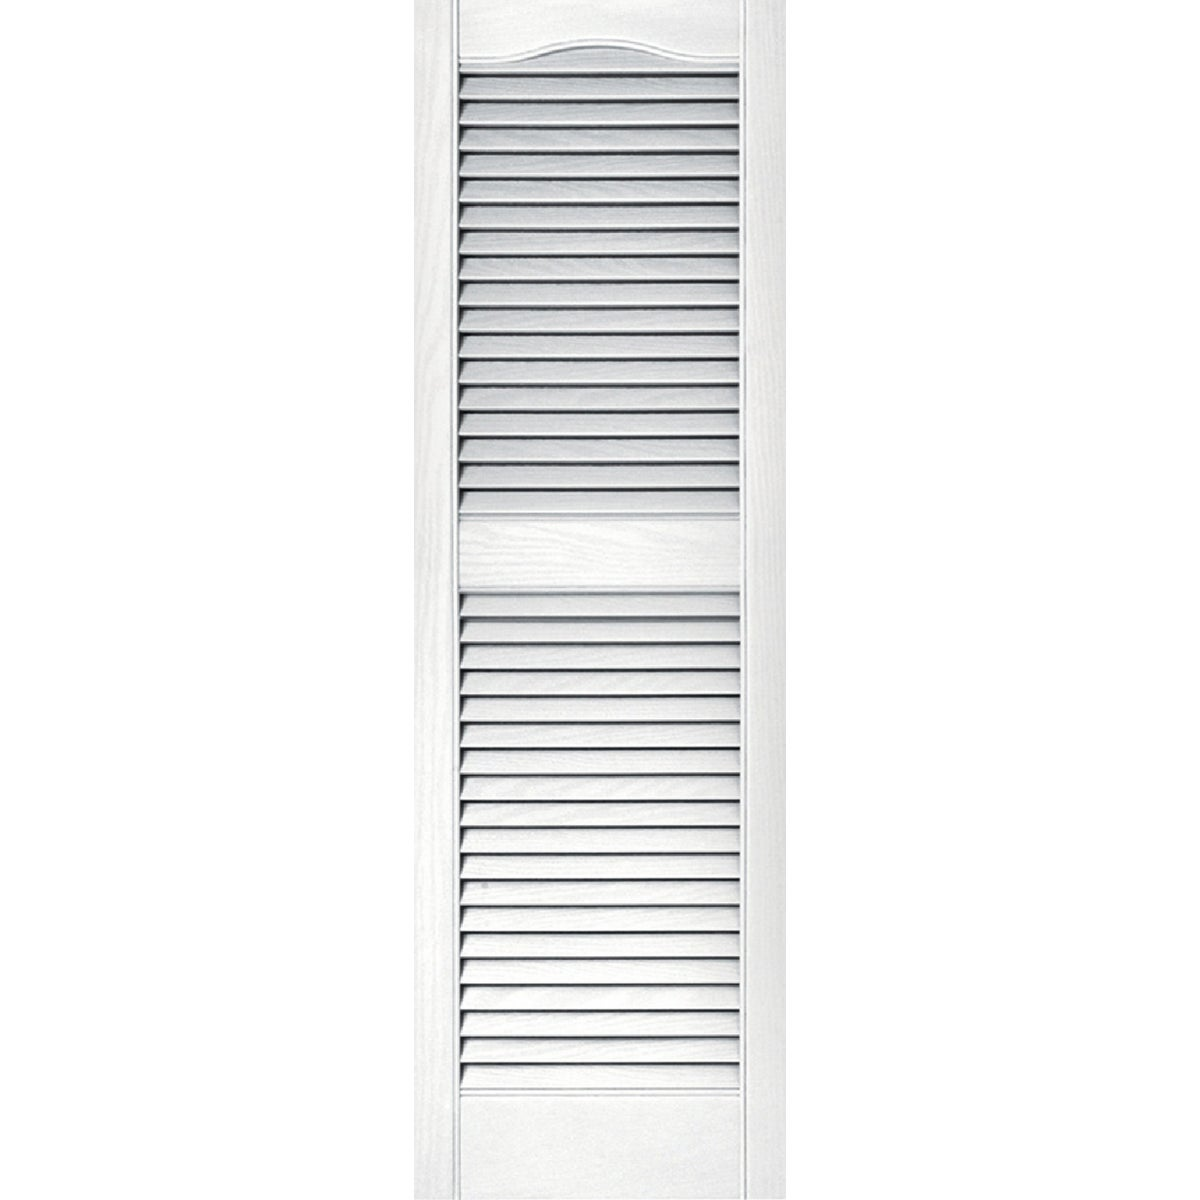 15X48 WHT LOUVER SHUTTER - 020140048001 by The Tapco Group